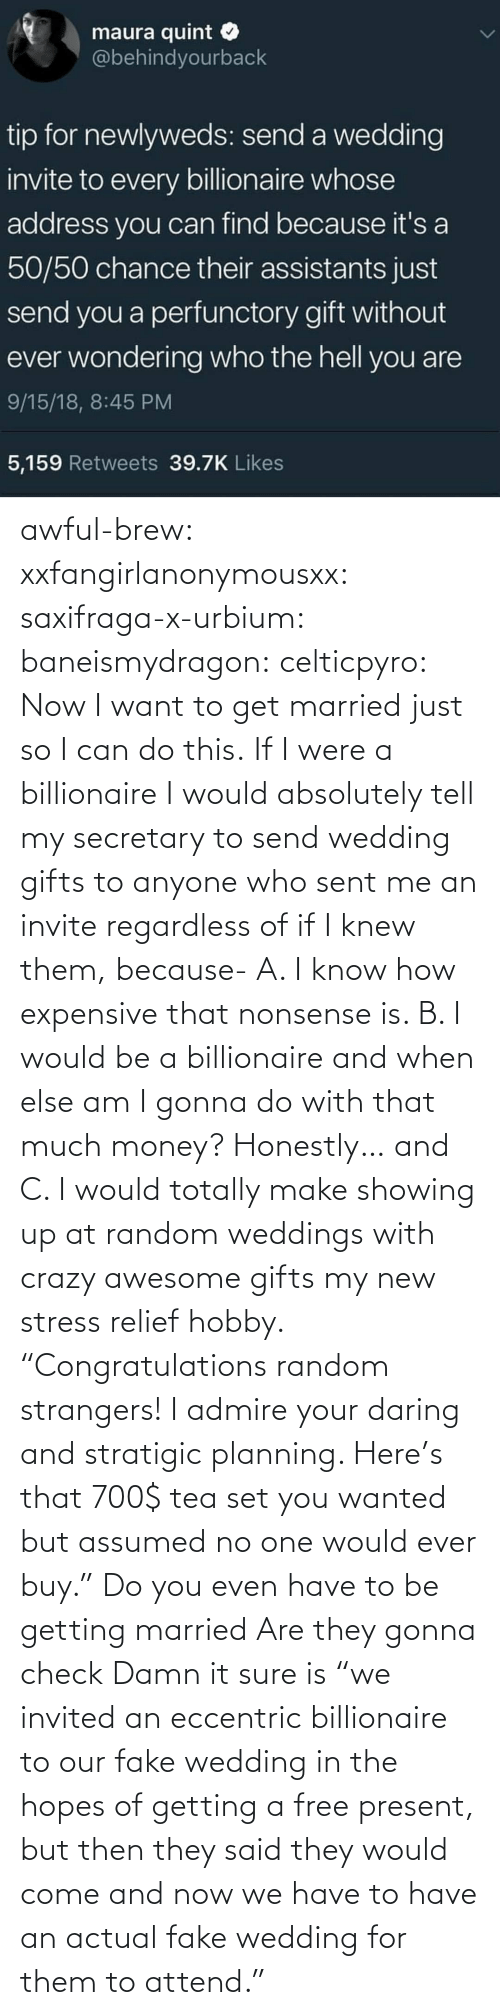 "Buy: awful-brew:  xxfangirlanonymousxx:  saxifraga-x-urbium:  baneismydragon:  celticpyro: Now I want to get married just so I can do this.  If I were a billionaire I would absolutely tell my secretary to send wedding gifts to anyone who sent me an invite regardless of if I knew them, because- A. I know how expensive that nonsense is. B. I would be a billionaire and when else am I gonna do with that much money? Honestly… and C. I would totally make showing up at random weddings with crazy awesome gifts my new stress relief hobby. ""Congratulations random strangers! I admire your daring and stratigic planning. Here's that 700$ tea set you wanted but assumed no one would ever buy.""   Do you even have to be getting married Are they gonna check   Damn it sure is  ""we invited an eccentric billionaire to our fake wedding in the hopes of getting a free present, but then they said they would come and now we have to have an actual fake wedding for them to attend."""